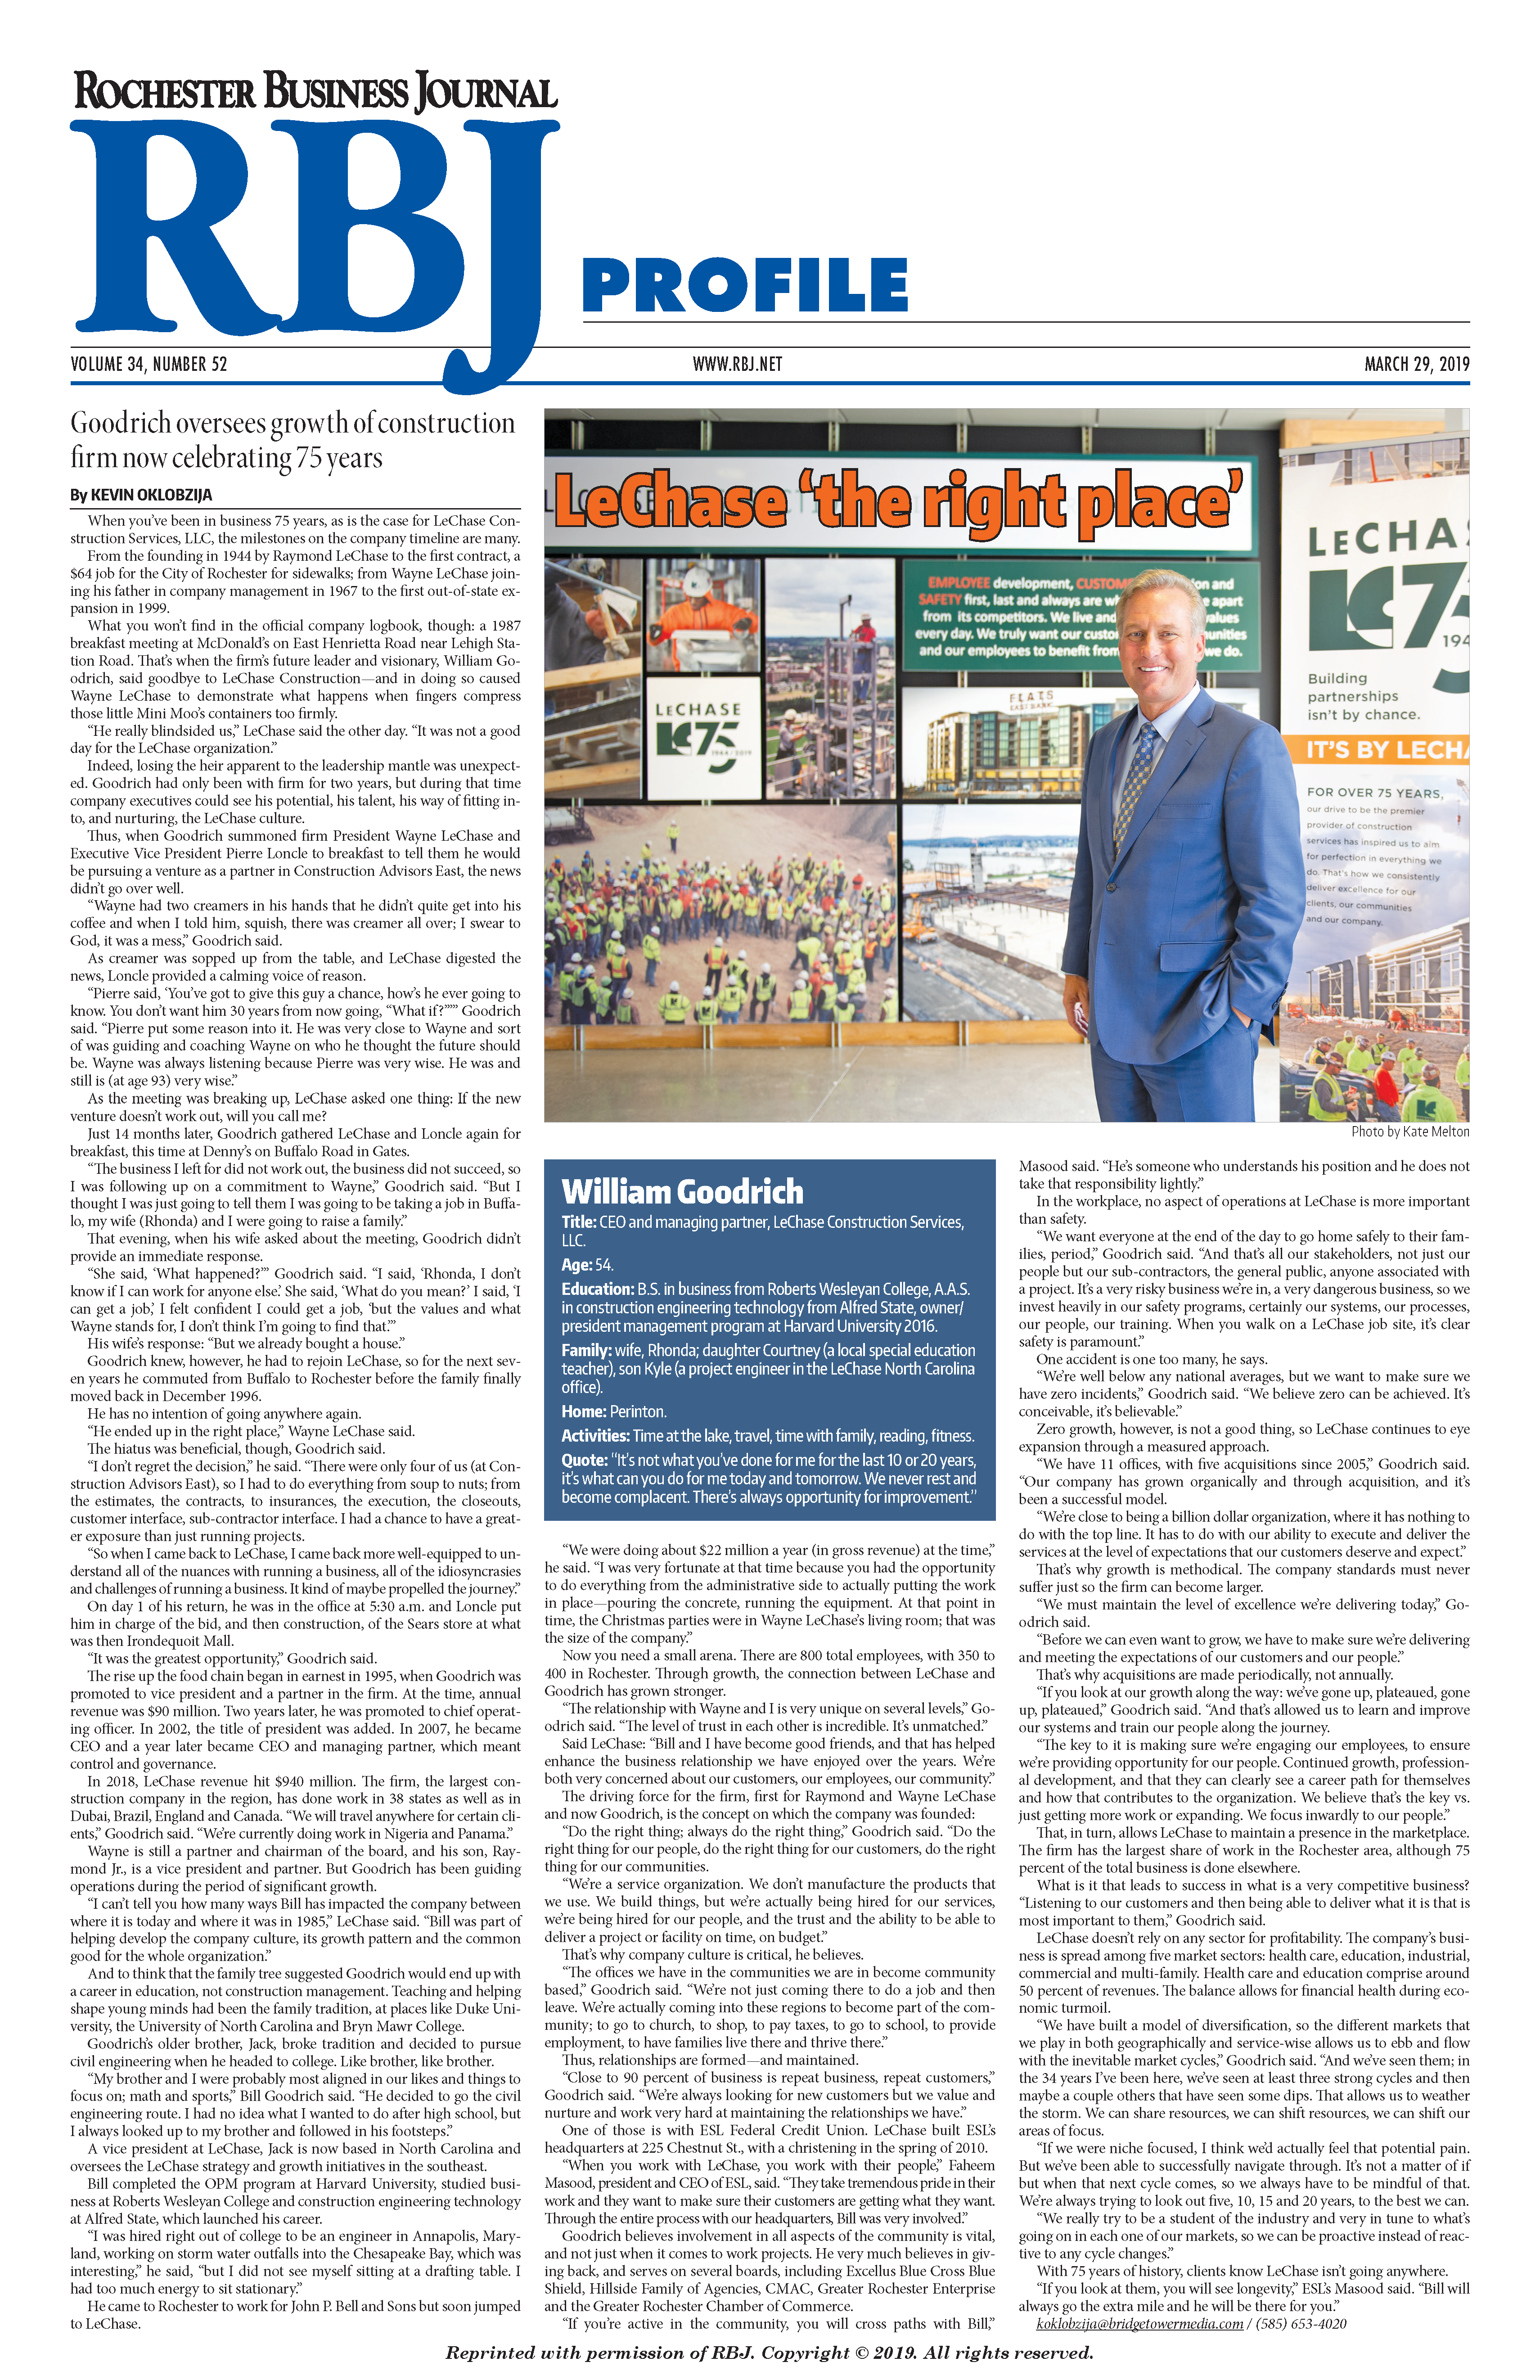 RBJ profiles LeChase CEO and Managing Partner Bill Goodrich